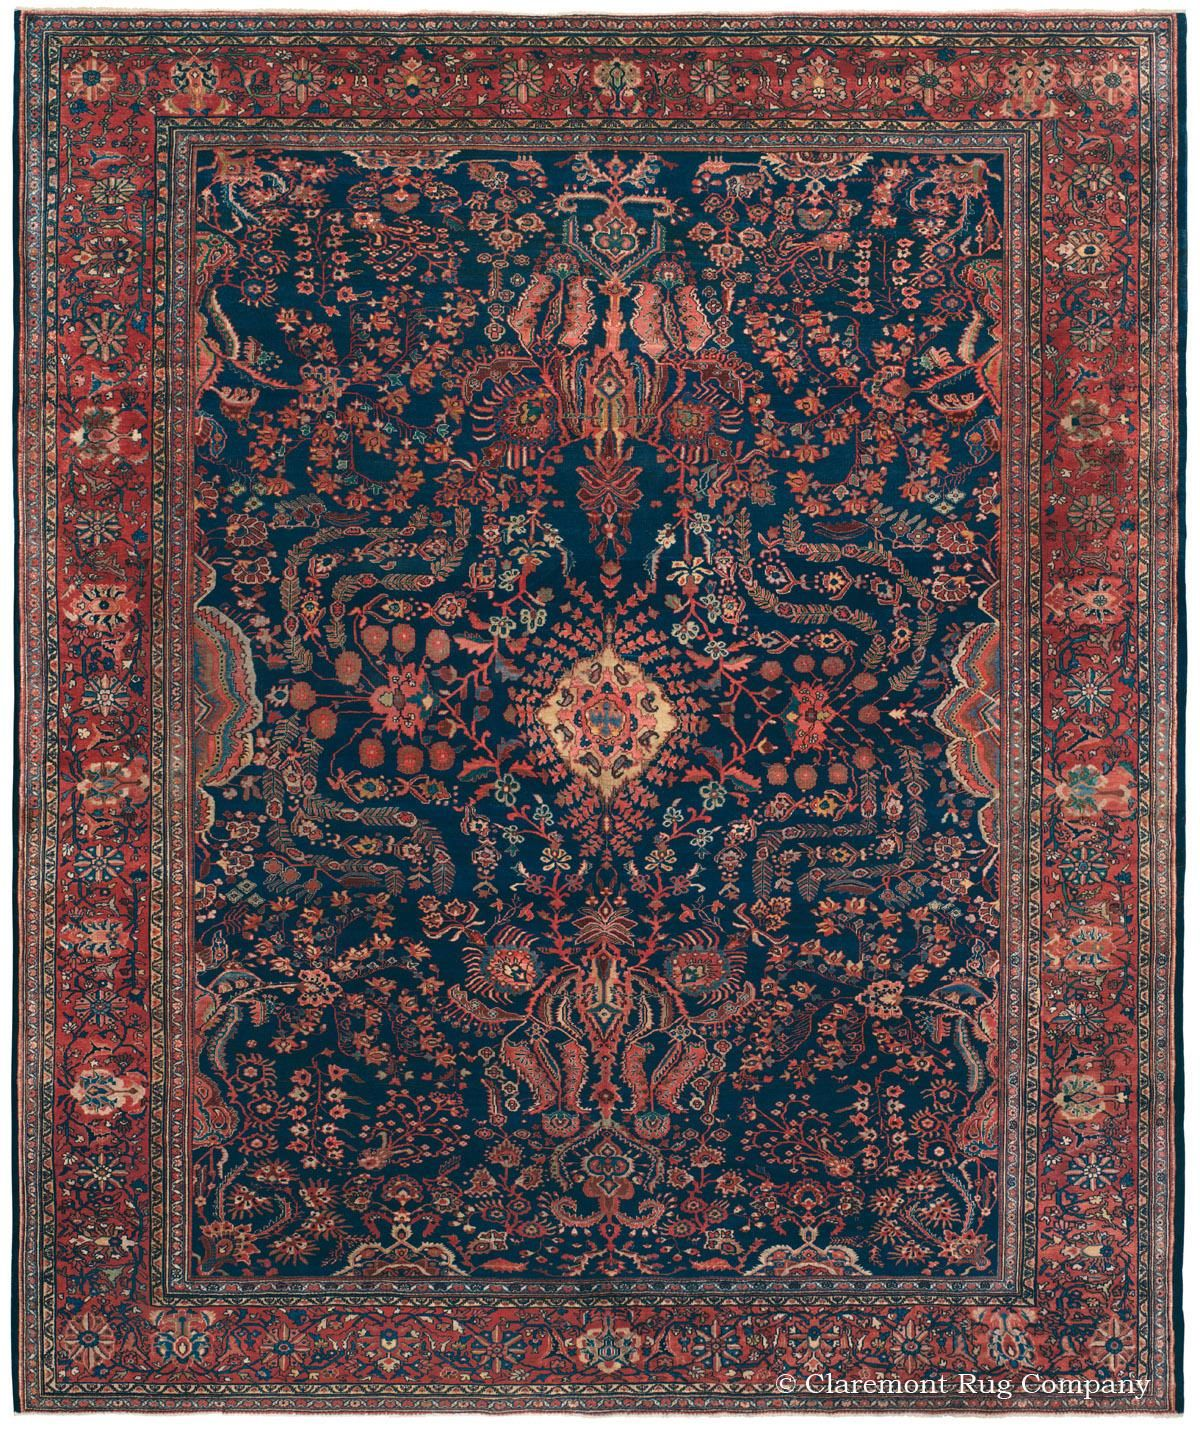 Ferahan Sarouk West Central Persian 10ft 4in X 12ft 1in Circa 1900 Rugs Antique Persian Carpet Antique Oriental Rugs